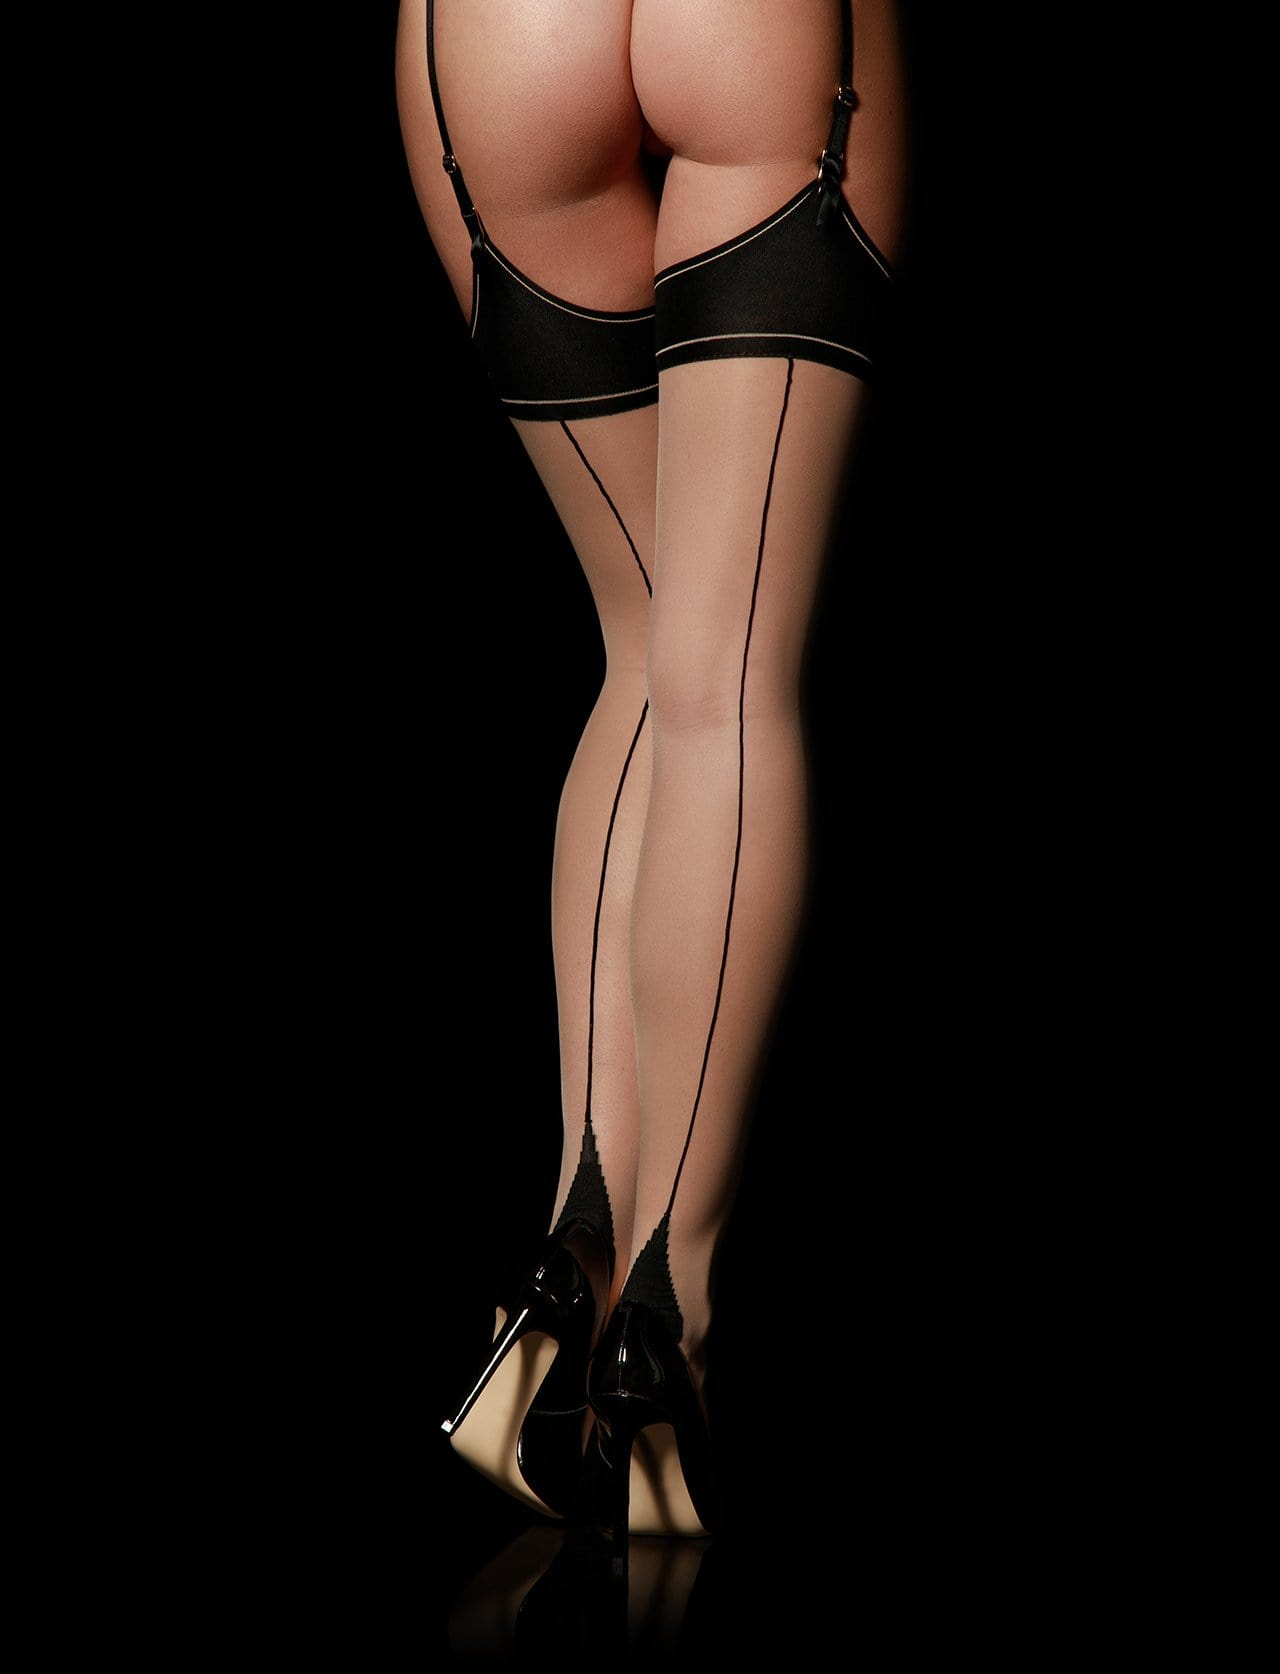 Classics Champagne Suspender Stockings